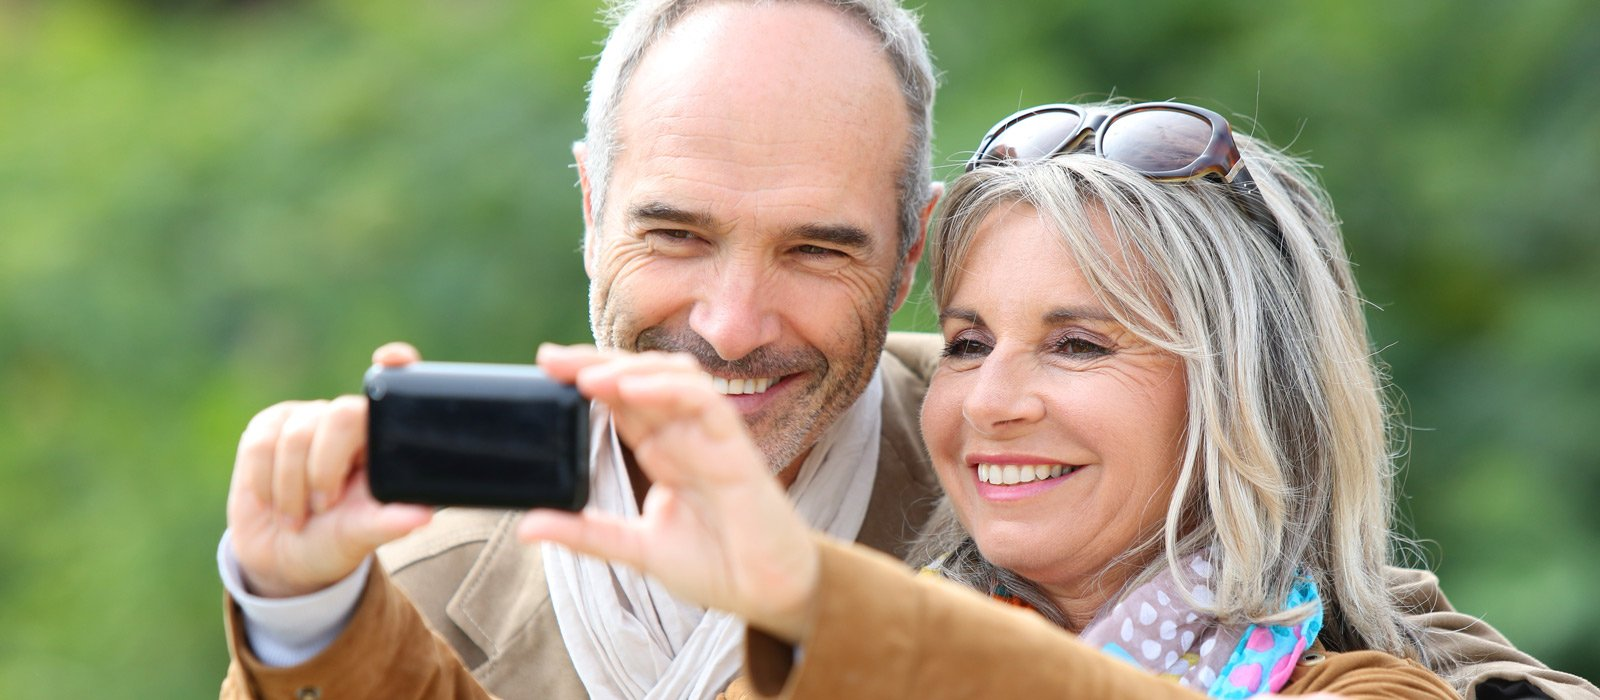 Cataract surgery: Don't Leave it Too Late